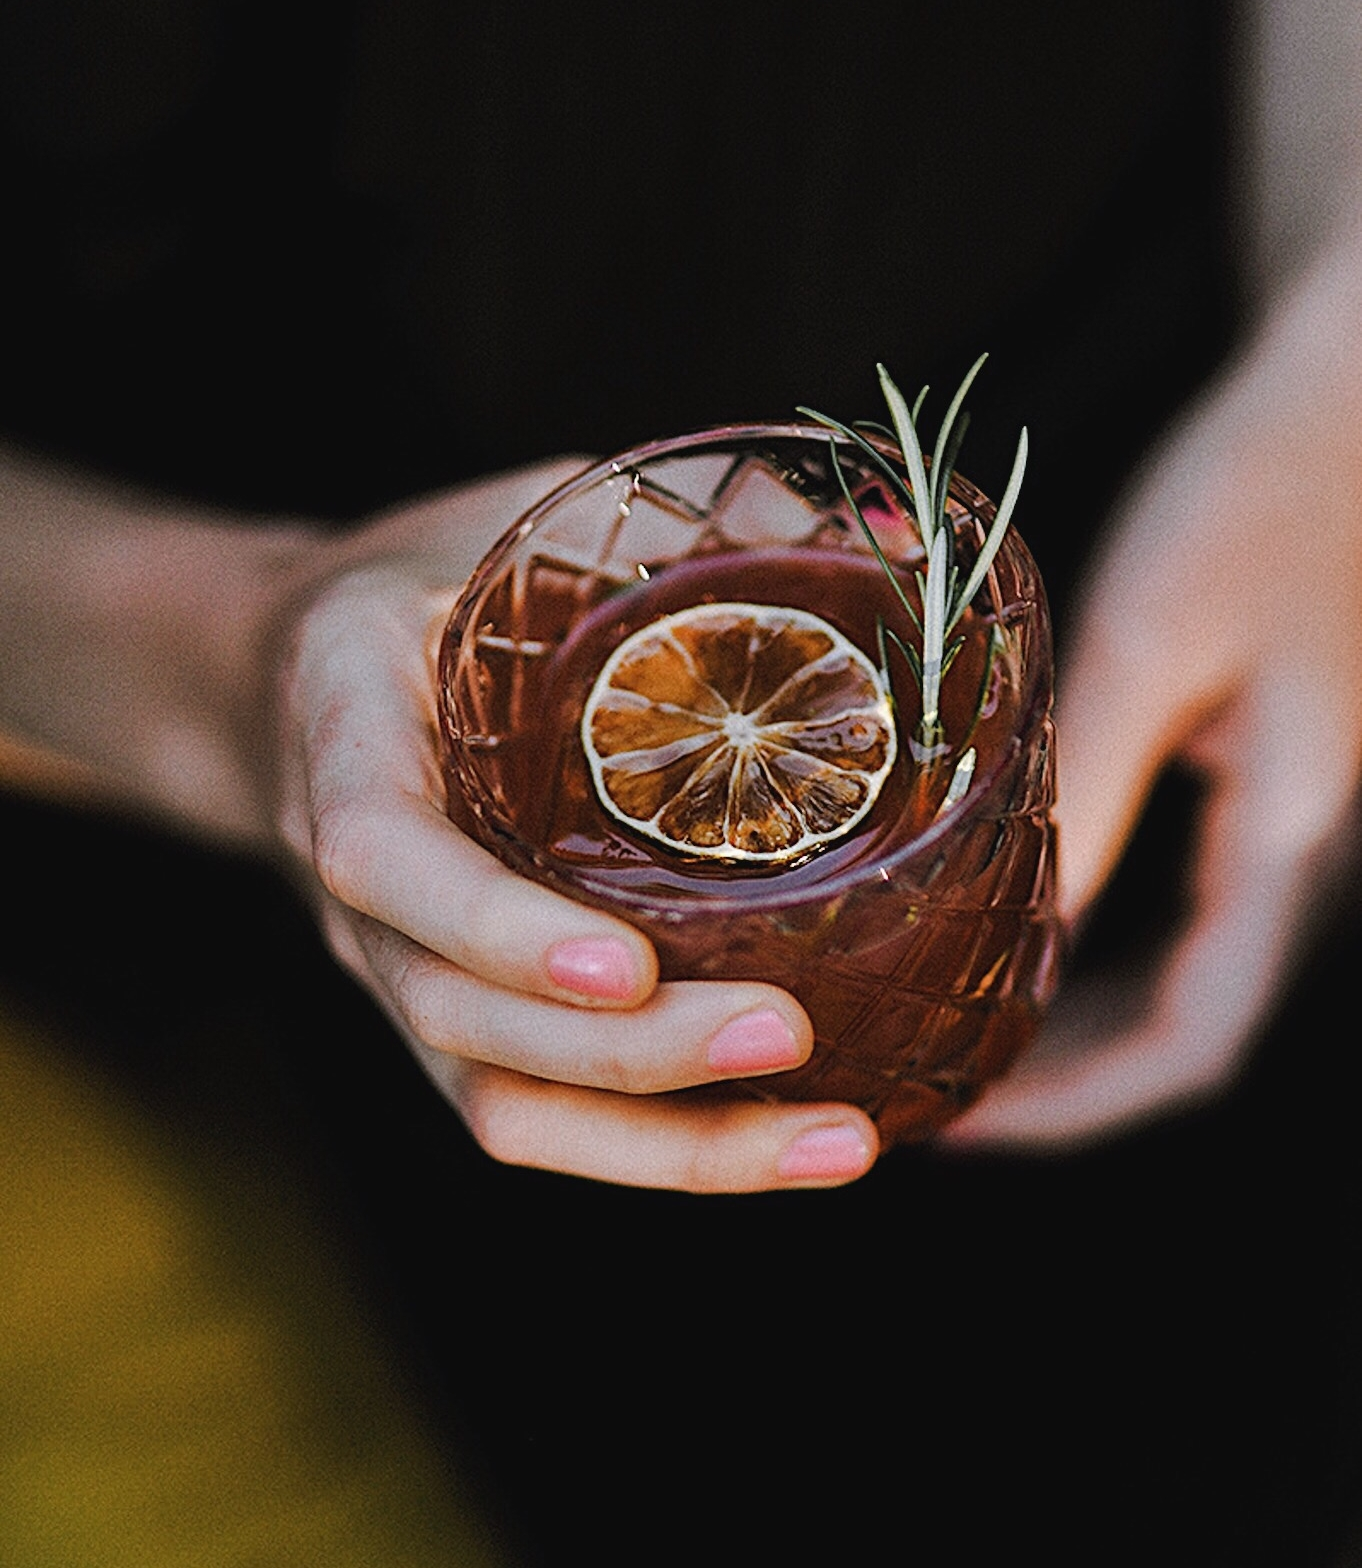 ingredients: - 1 1/2 Portland Potato Vodka1 1/2 oz pomegranate juice3/4 oz fresh lime juice1/4 oz simple syrup3 dashes of grapefruit bittersFresh rosemary sprigGarnish: Another sprig of rosemary & dehydrated lime wheel